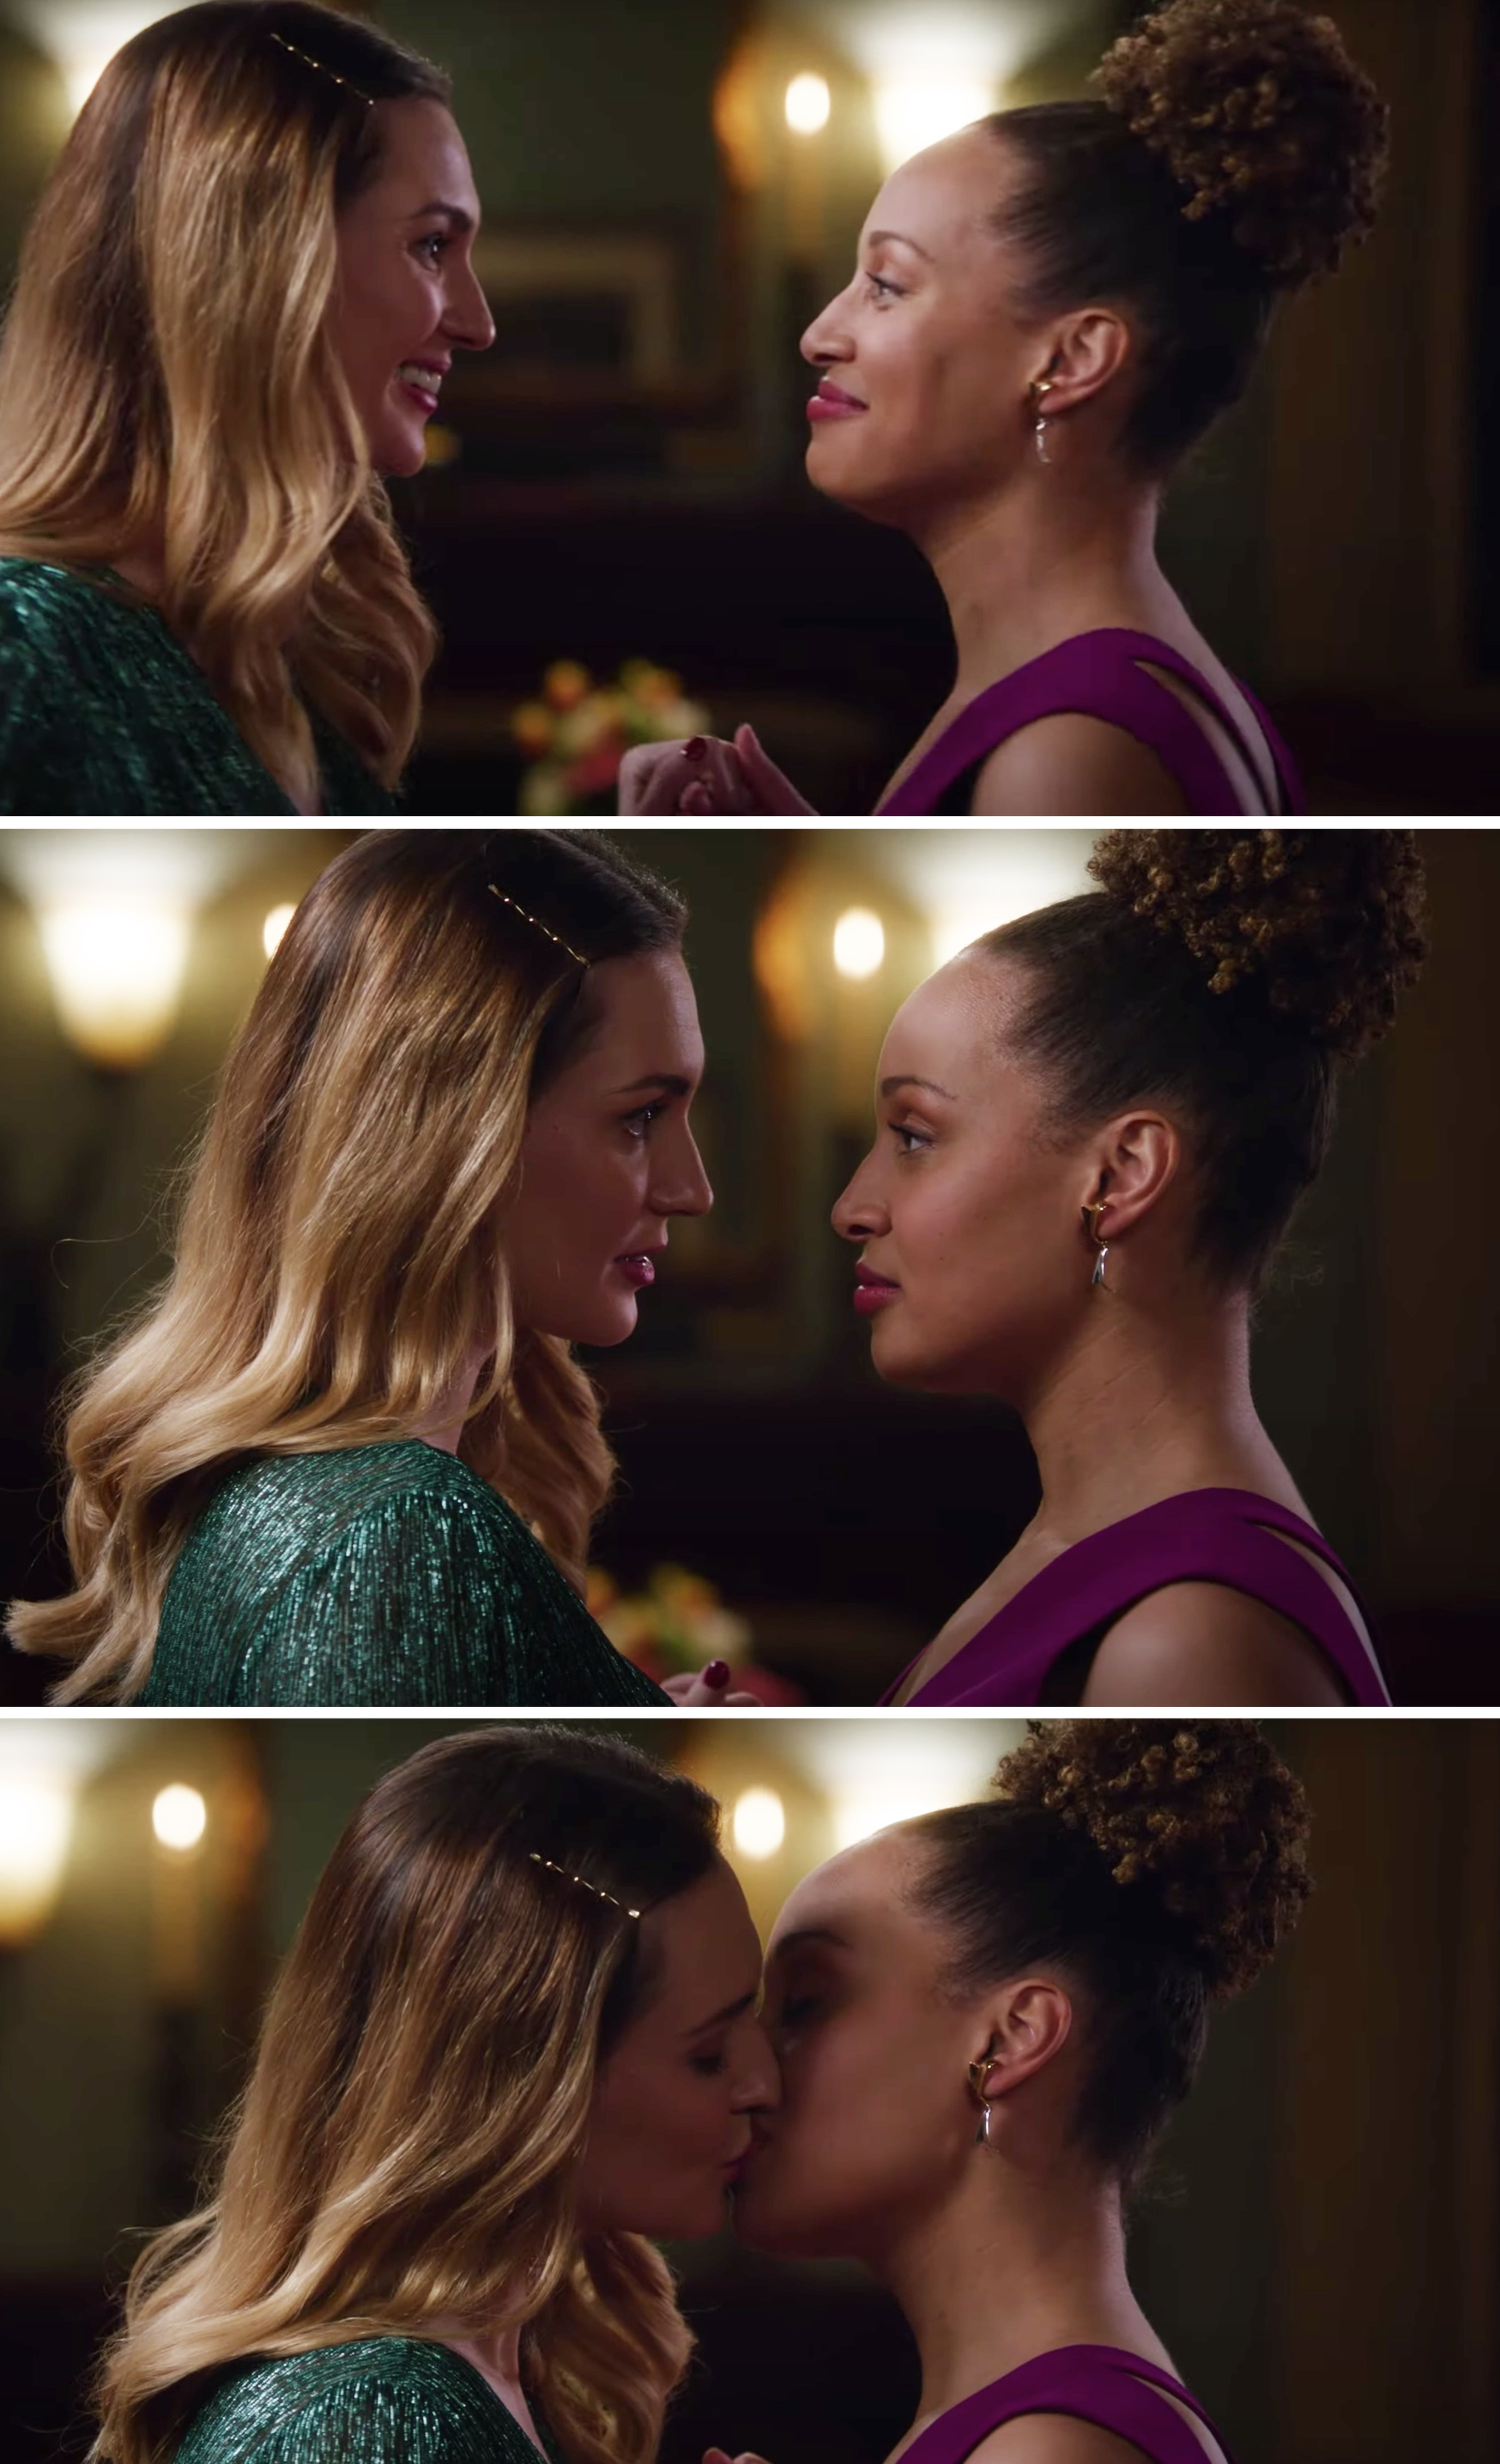 Joy and Zoey dancing and kissing